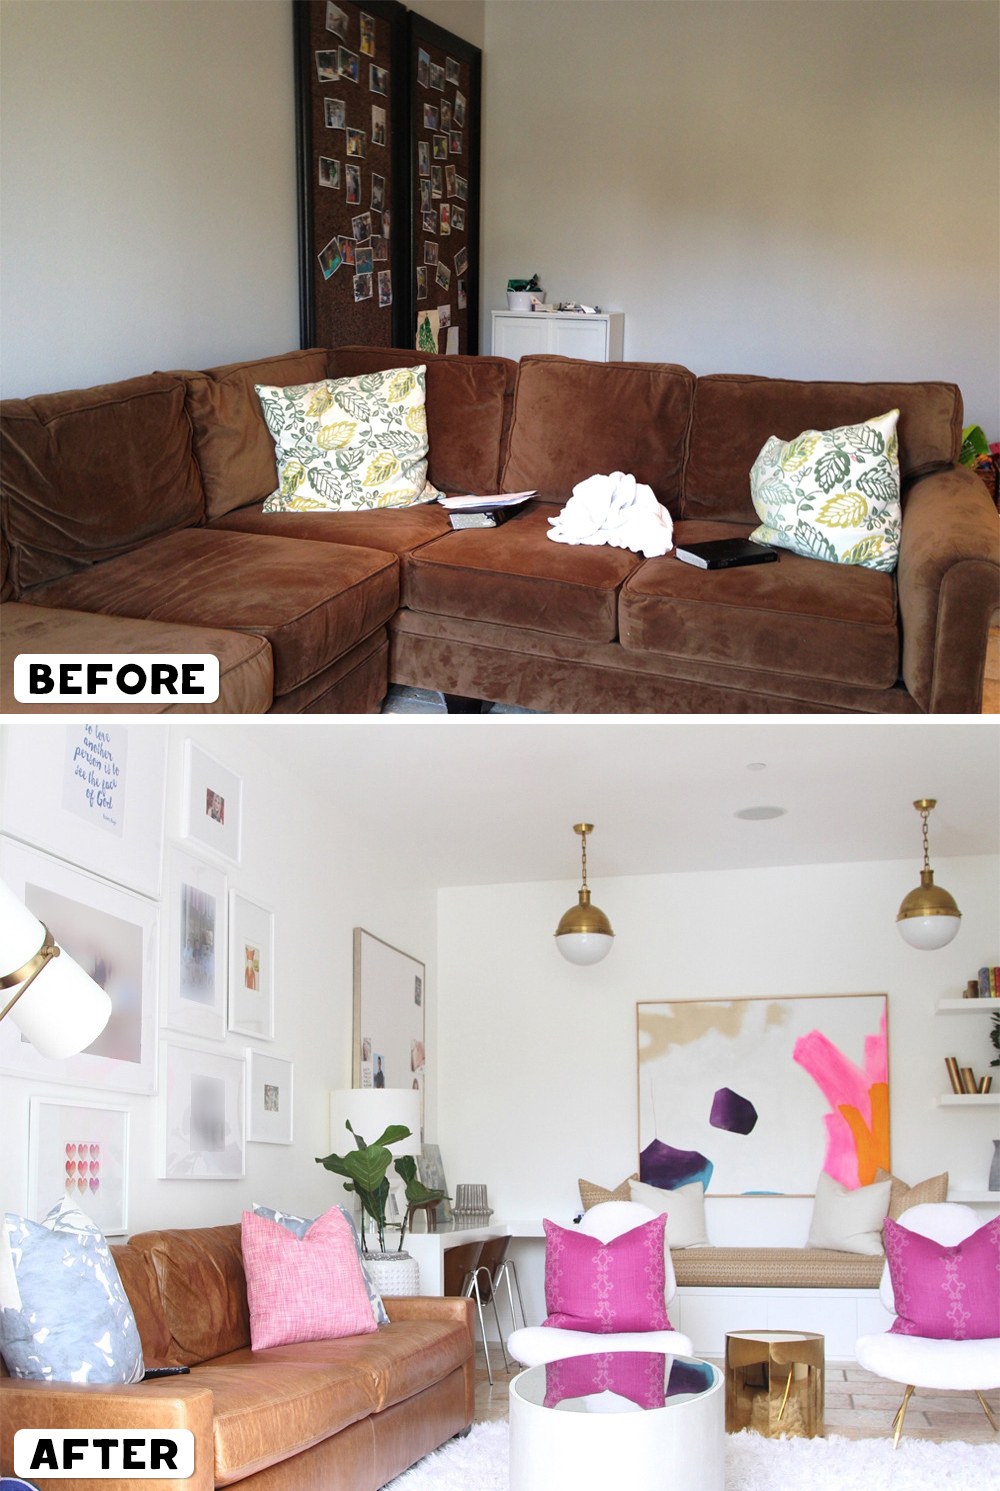 AD-Seriously-Impressive-Home-Makeovers-10